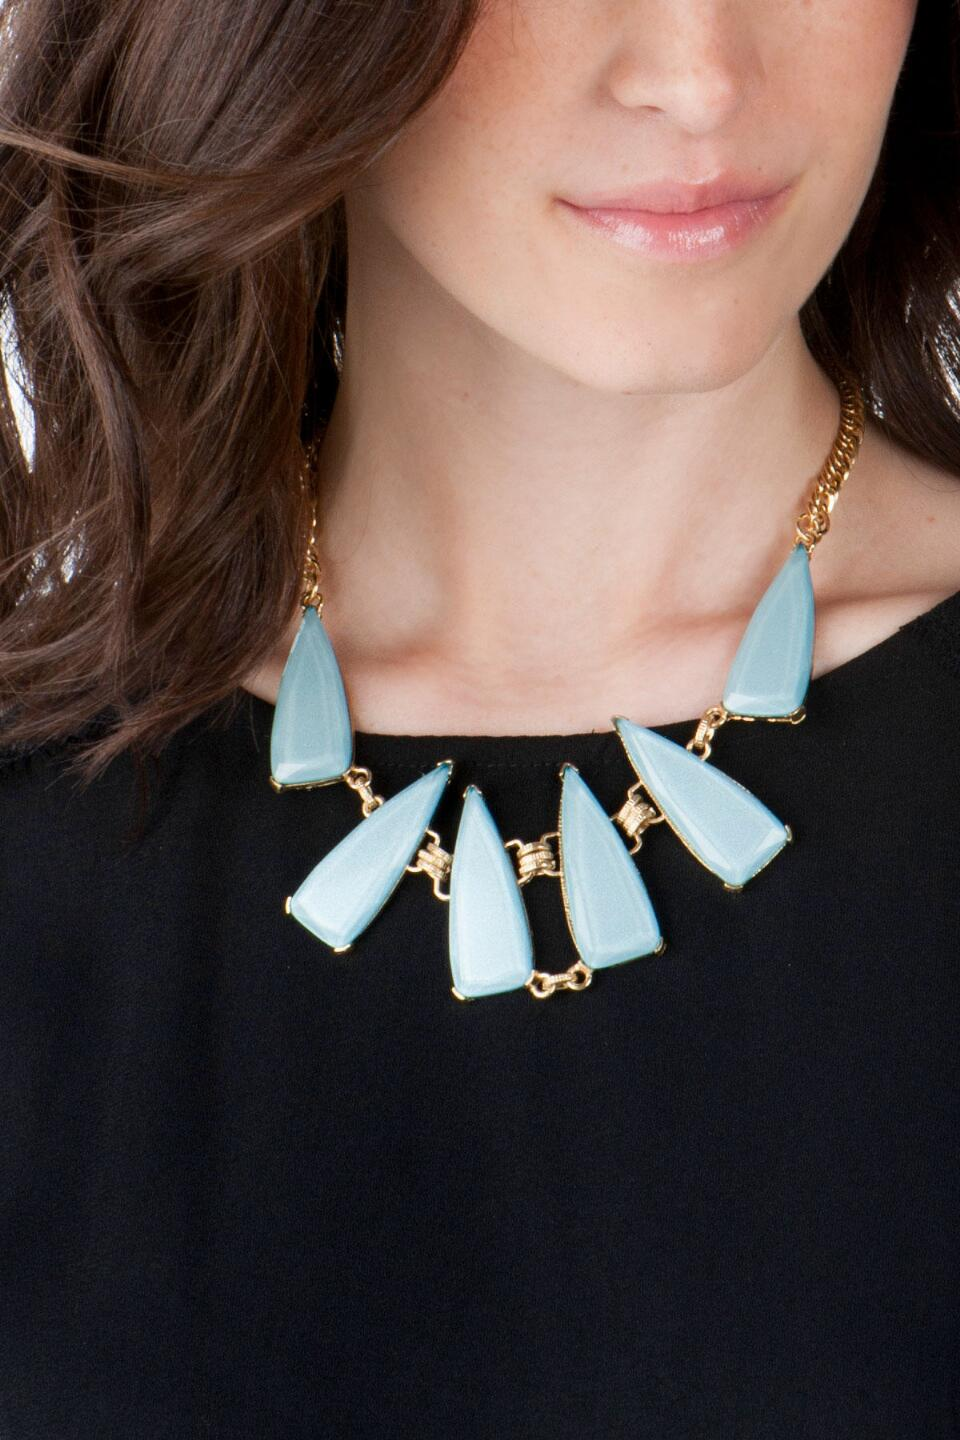 Salzburg Geometric Statement Necklace in Light Blue-  ltblu-clmodel